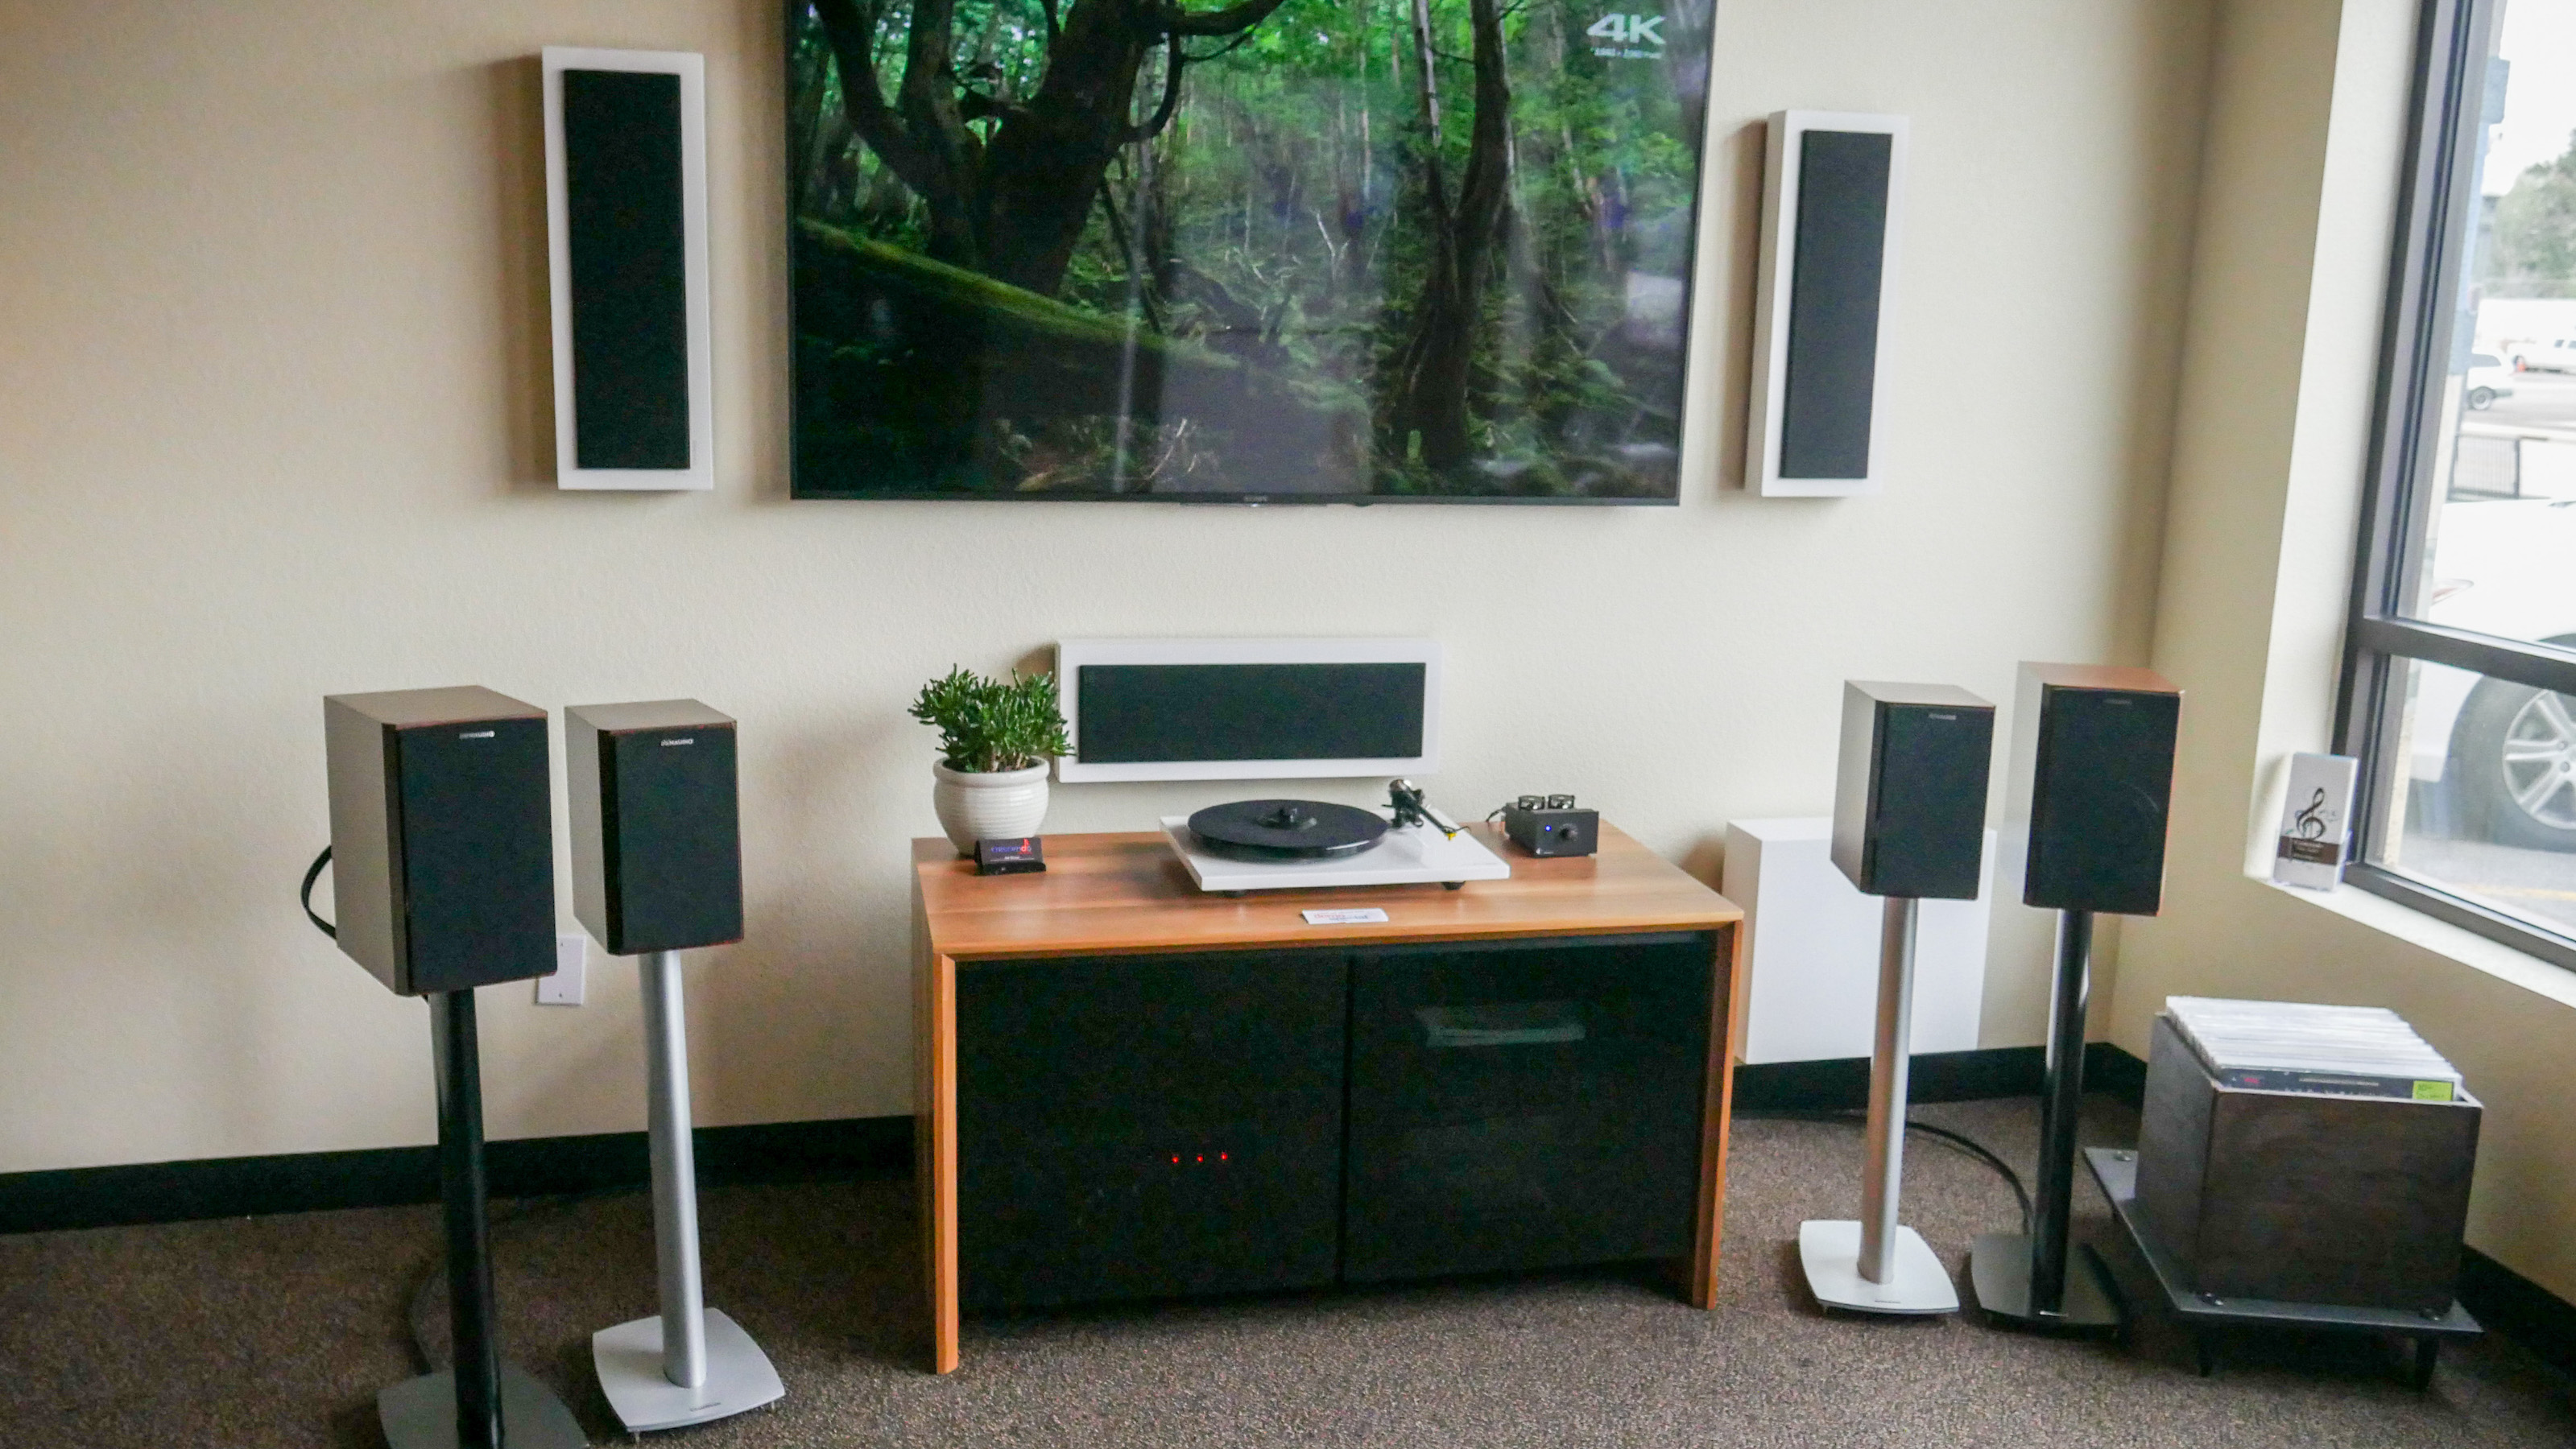 http://audiophilereview.com/images/Tec6.jpg